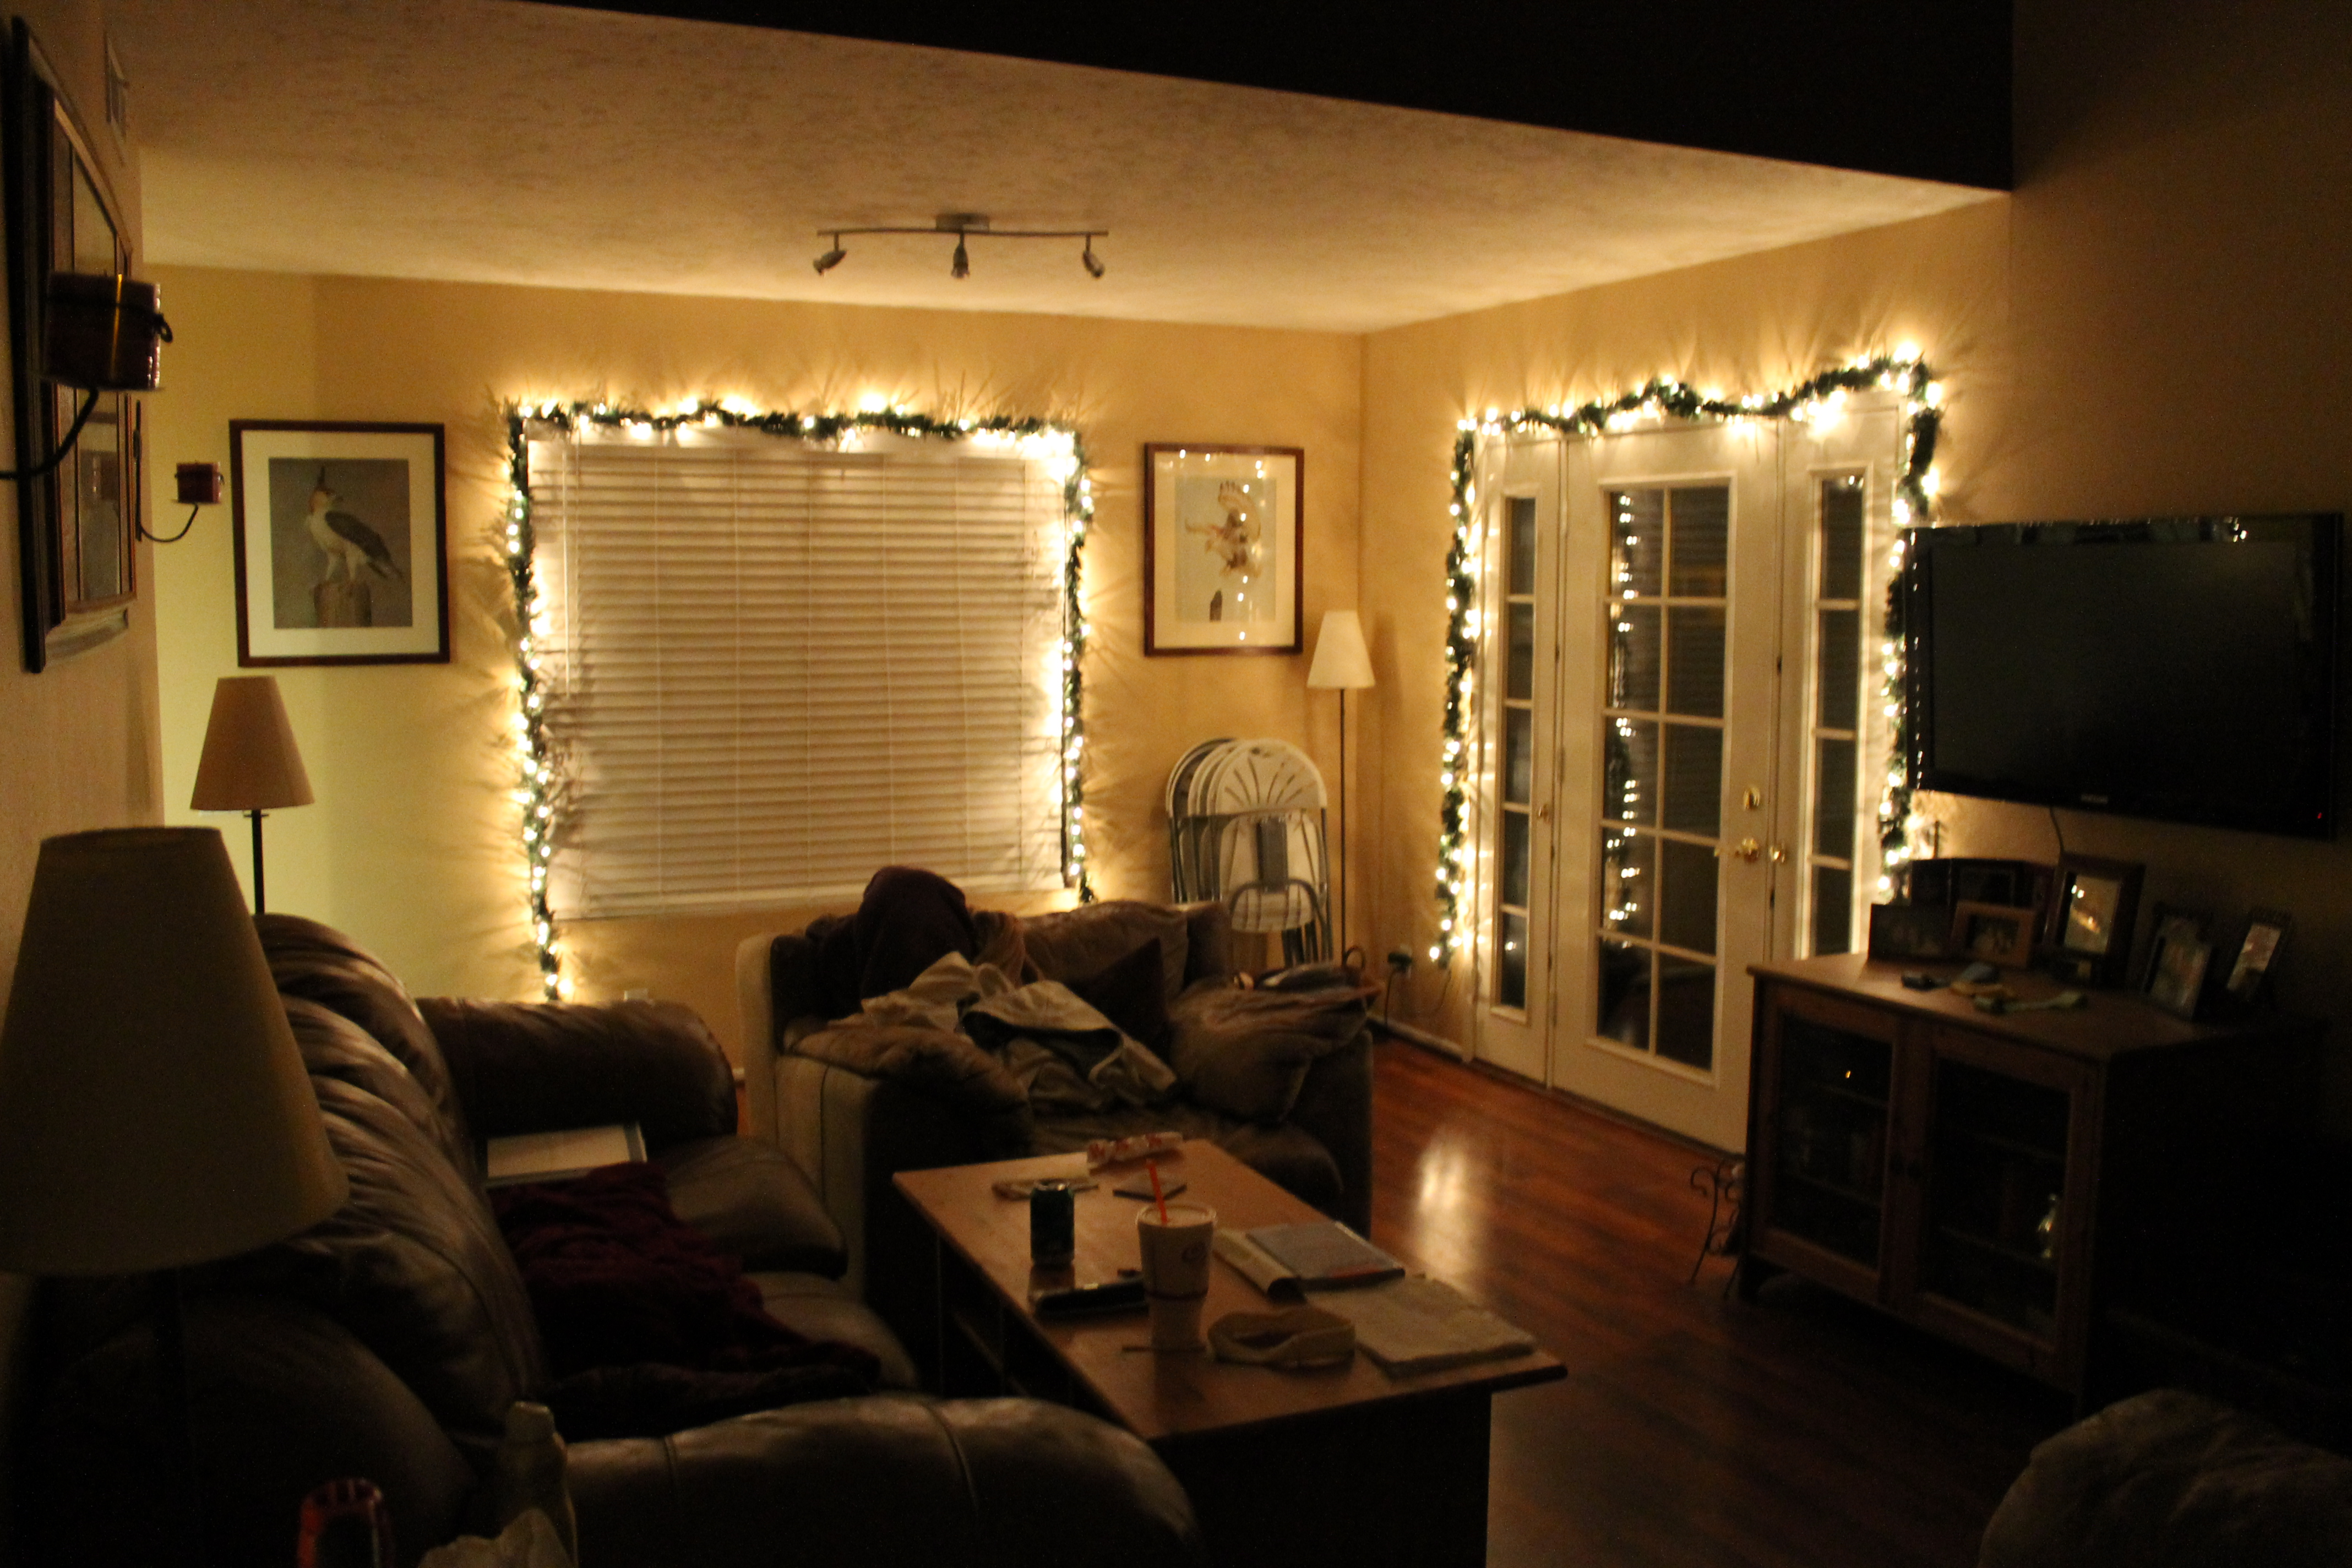 Get into the christmas spirit fotor 39 s blog - Light decorations for living room ...